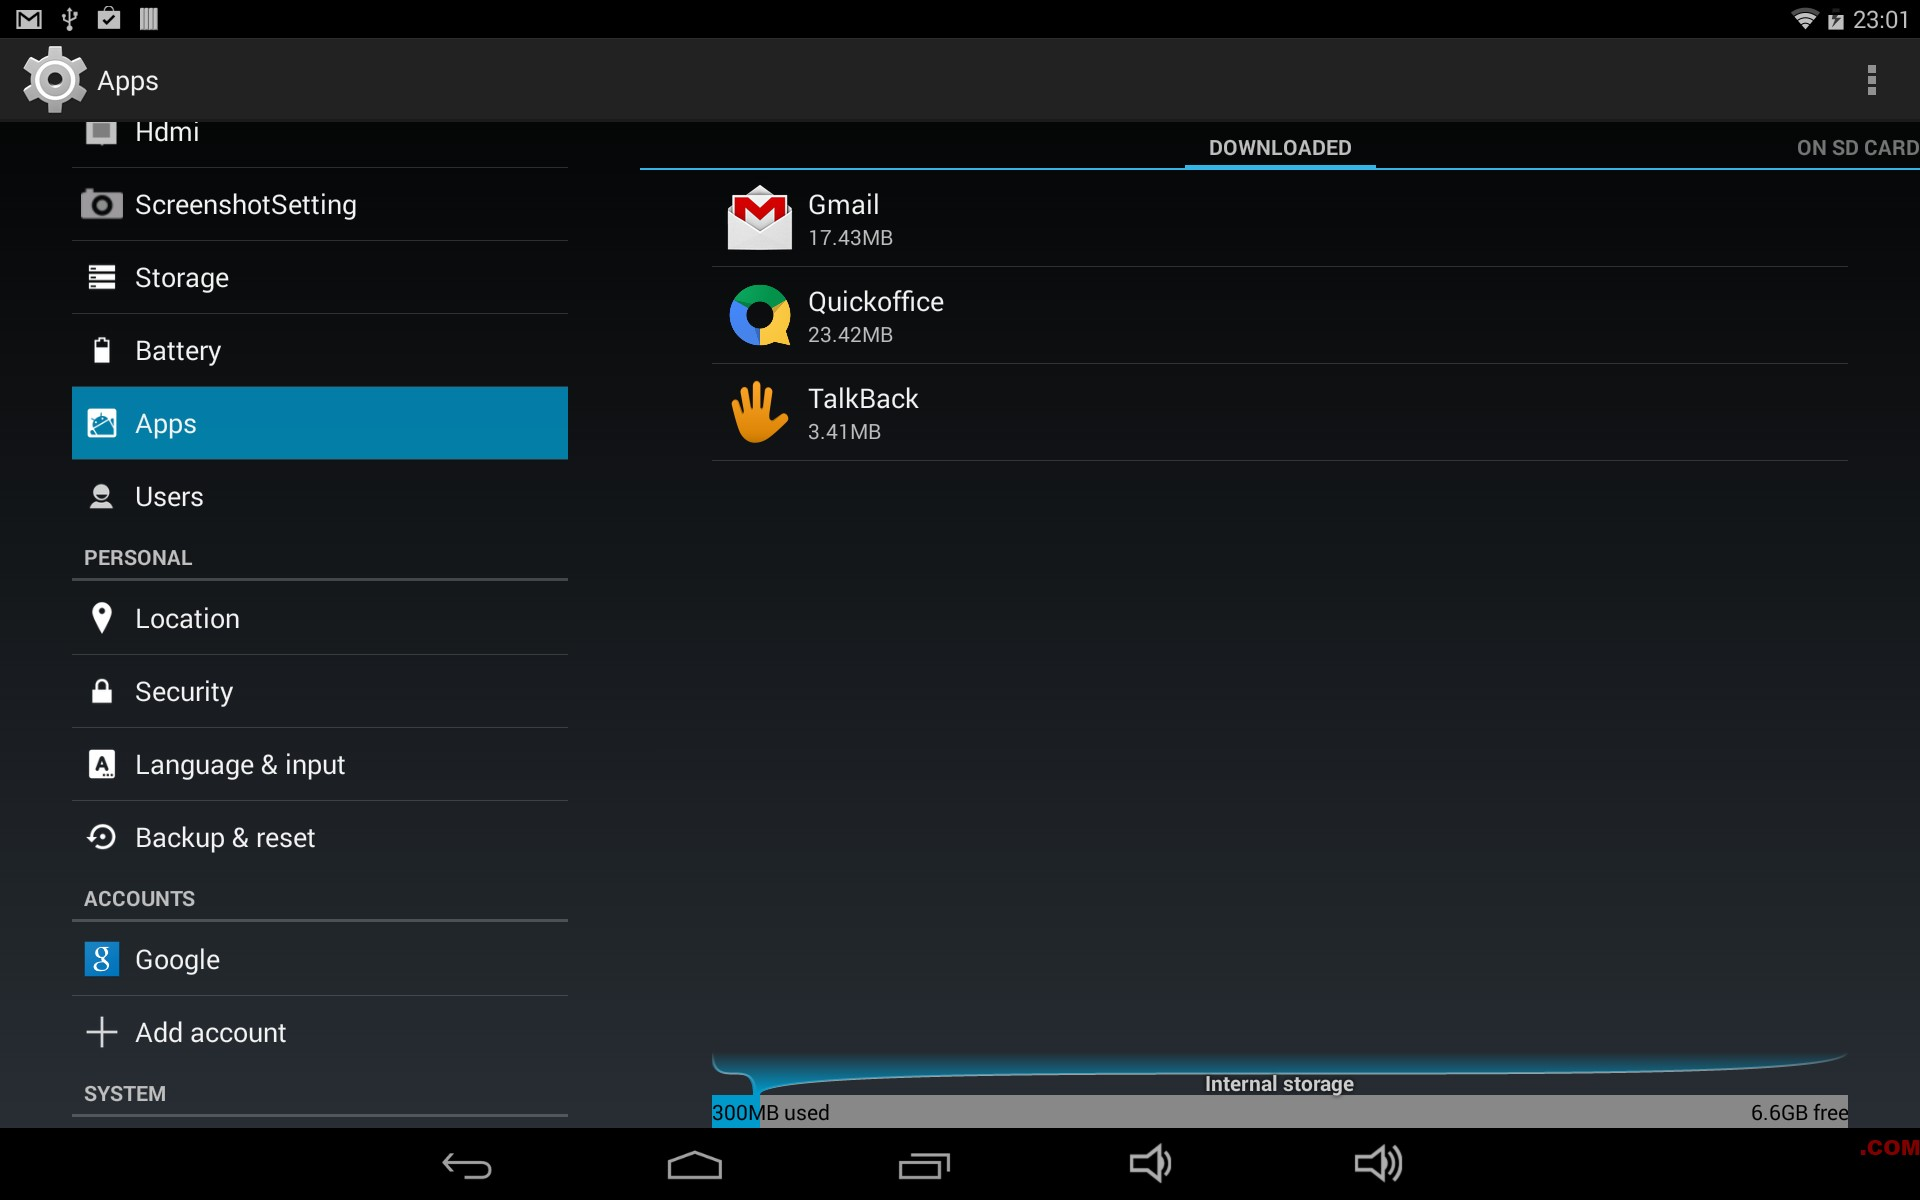 pipo_m9_pro_android442_kitkat_20140319_storage_apps.png